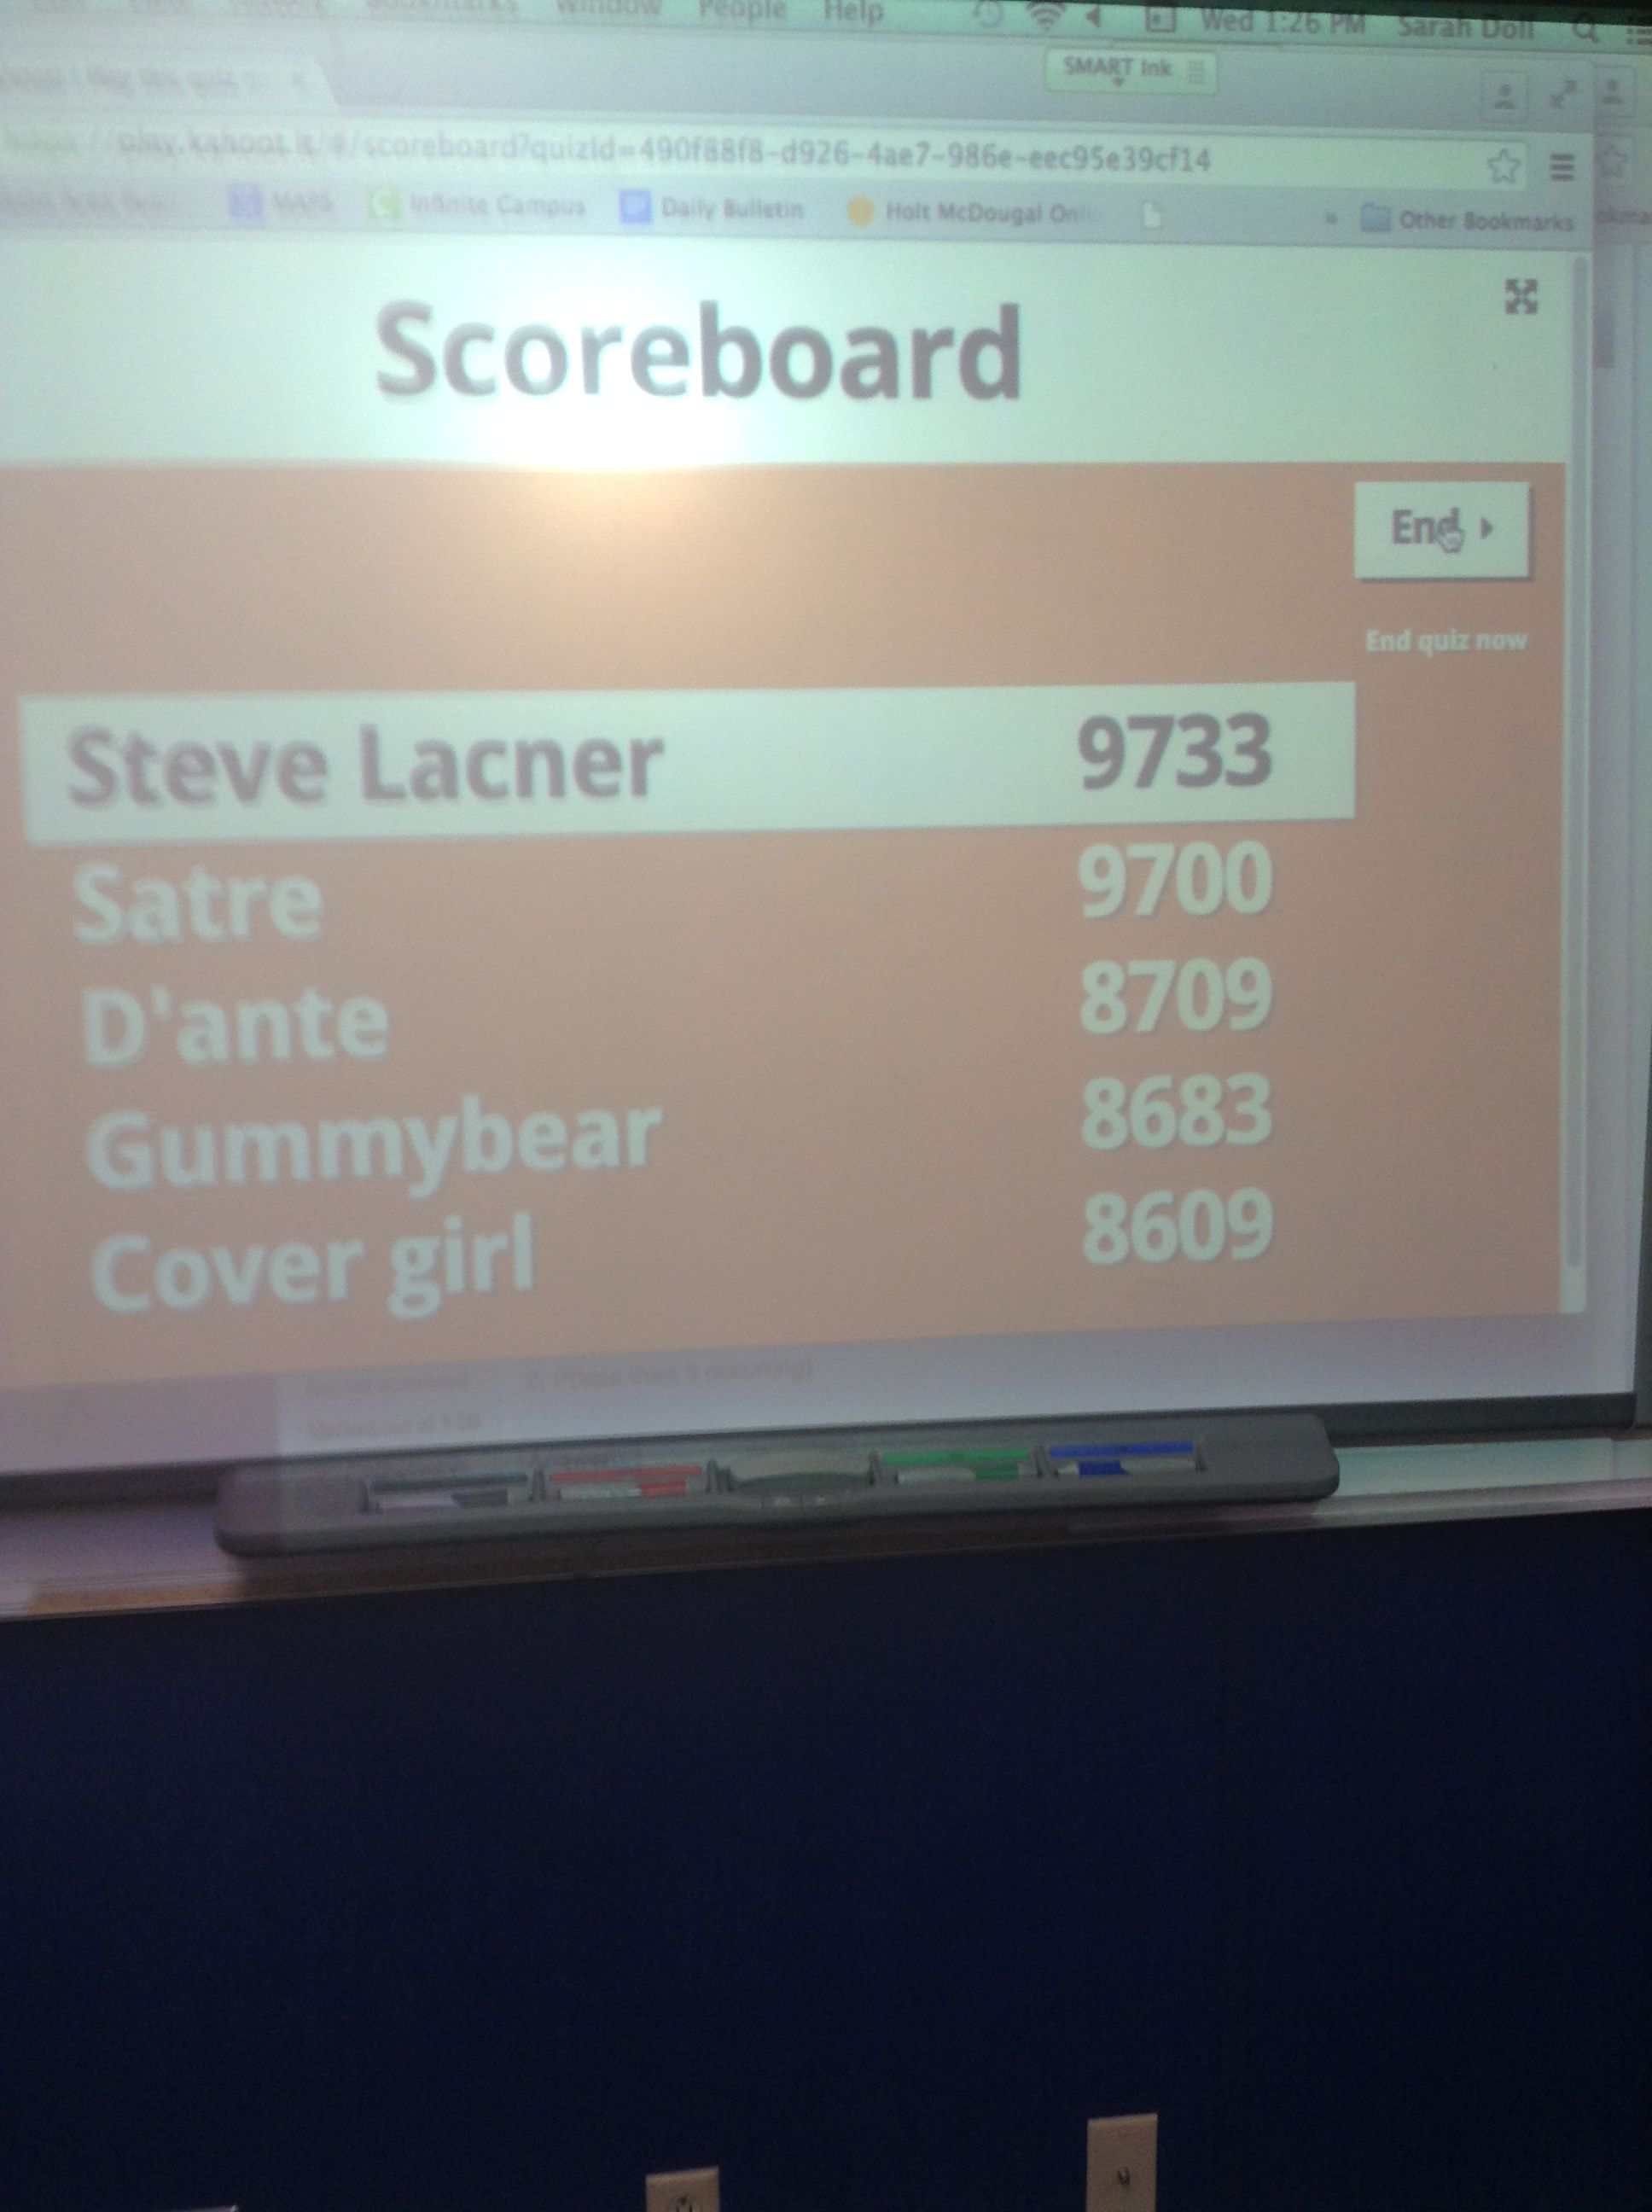 So our math teacher let us chose any name as long as it